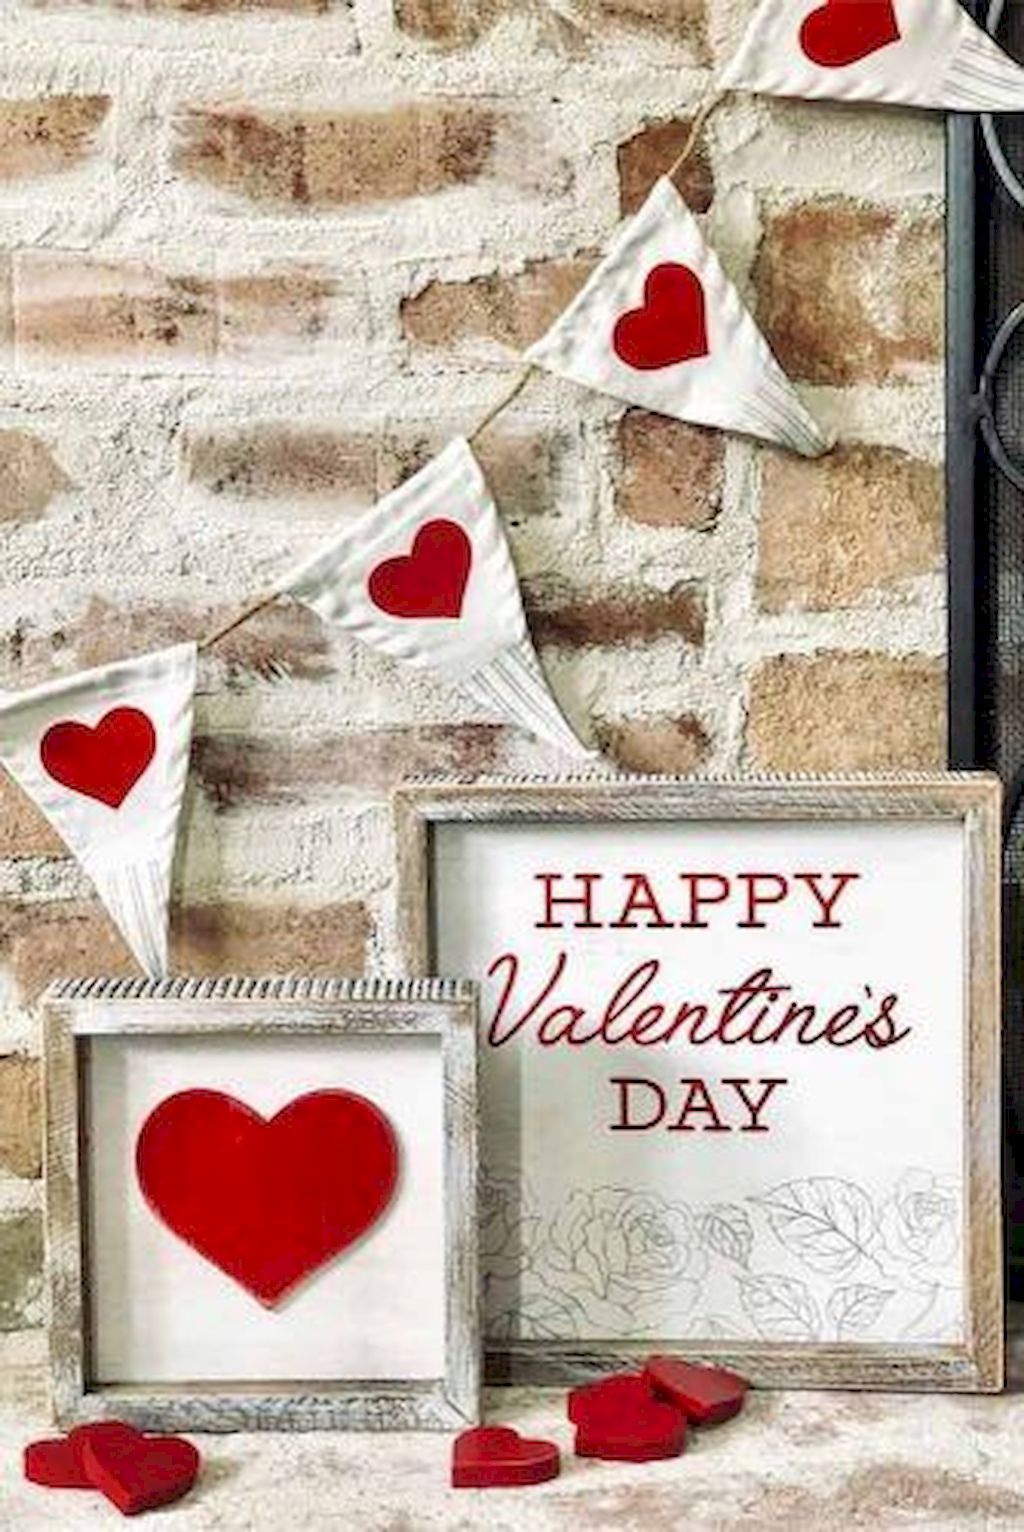 https://elonahome.com/wp-content/uploads/2019/01/DIY-home-decoration-you-can-make-to-celebrate-the-Valentine-with-your-partner-Part-9.jpg